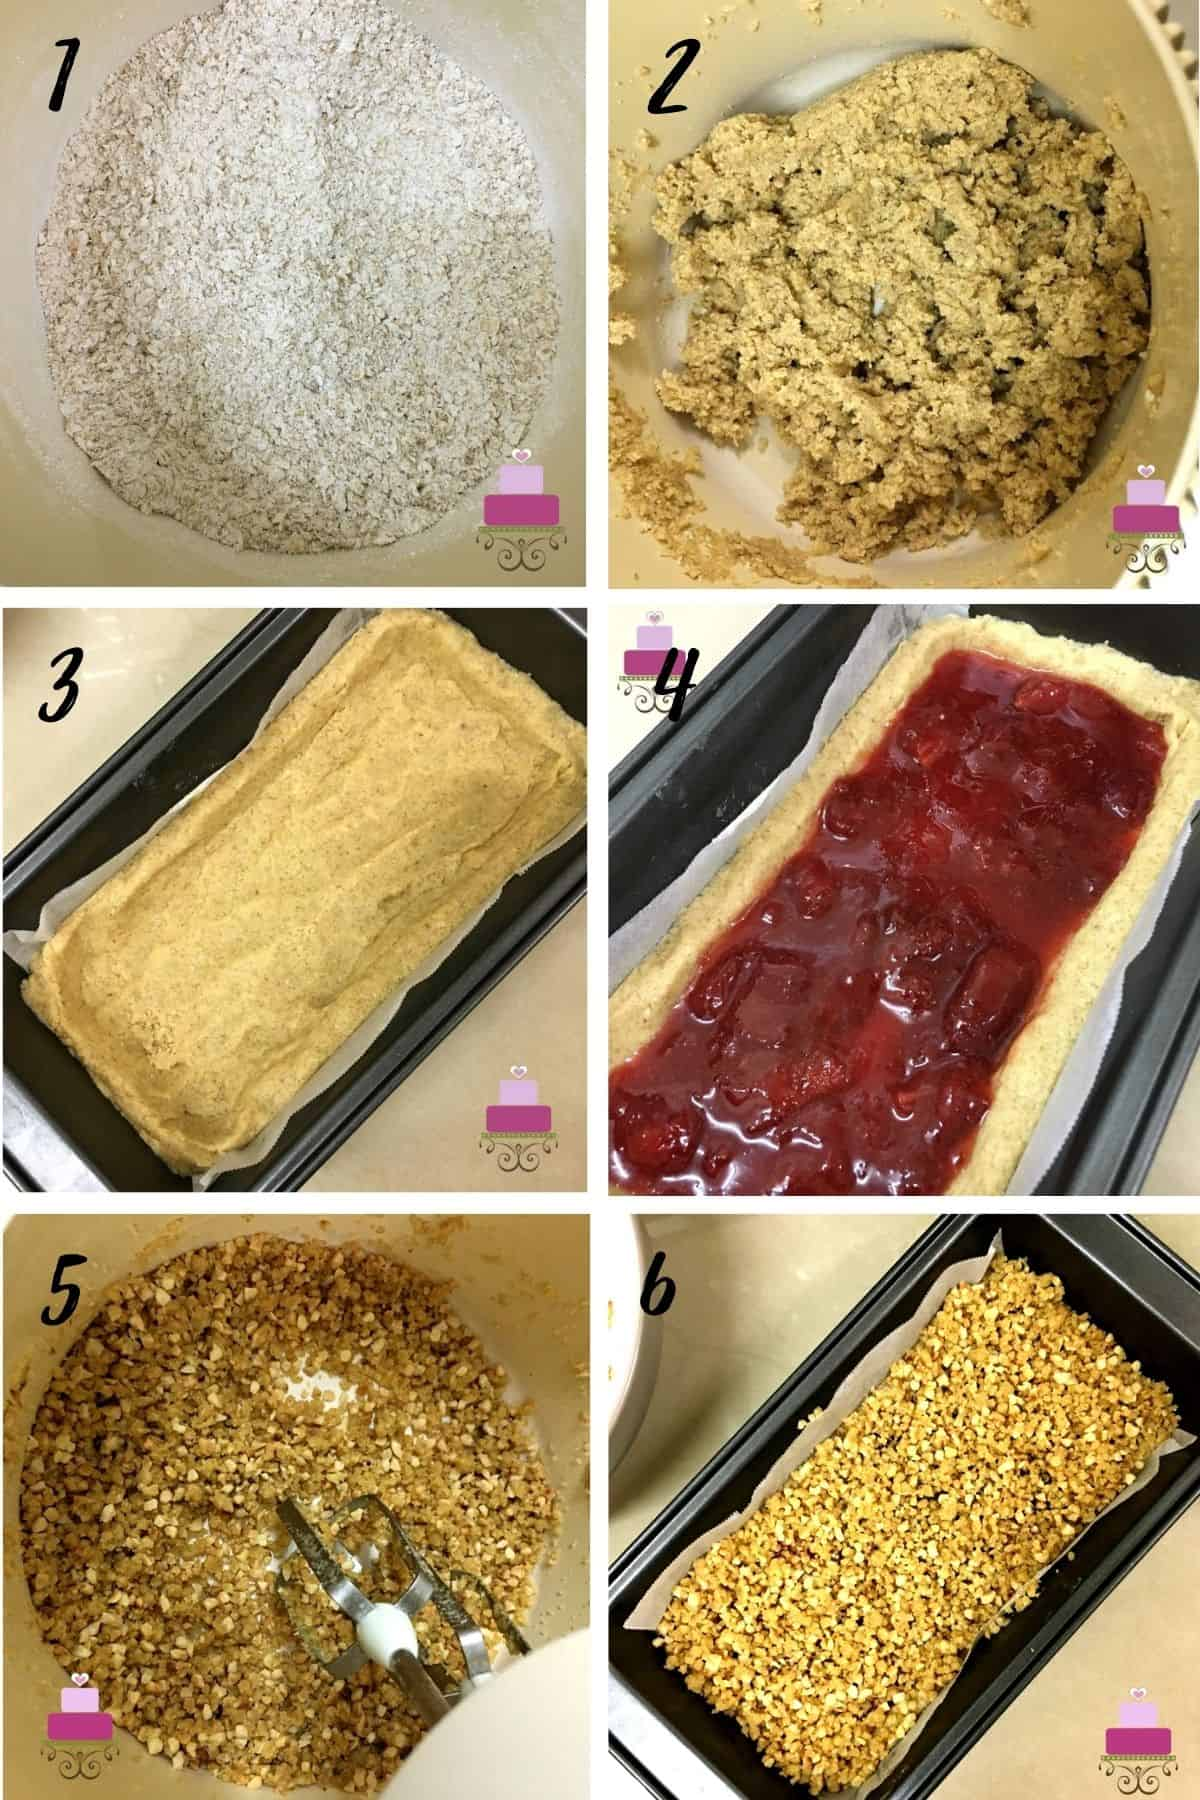 A poster of 6 images showing how to make strawberry oat bars